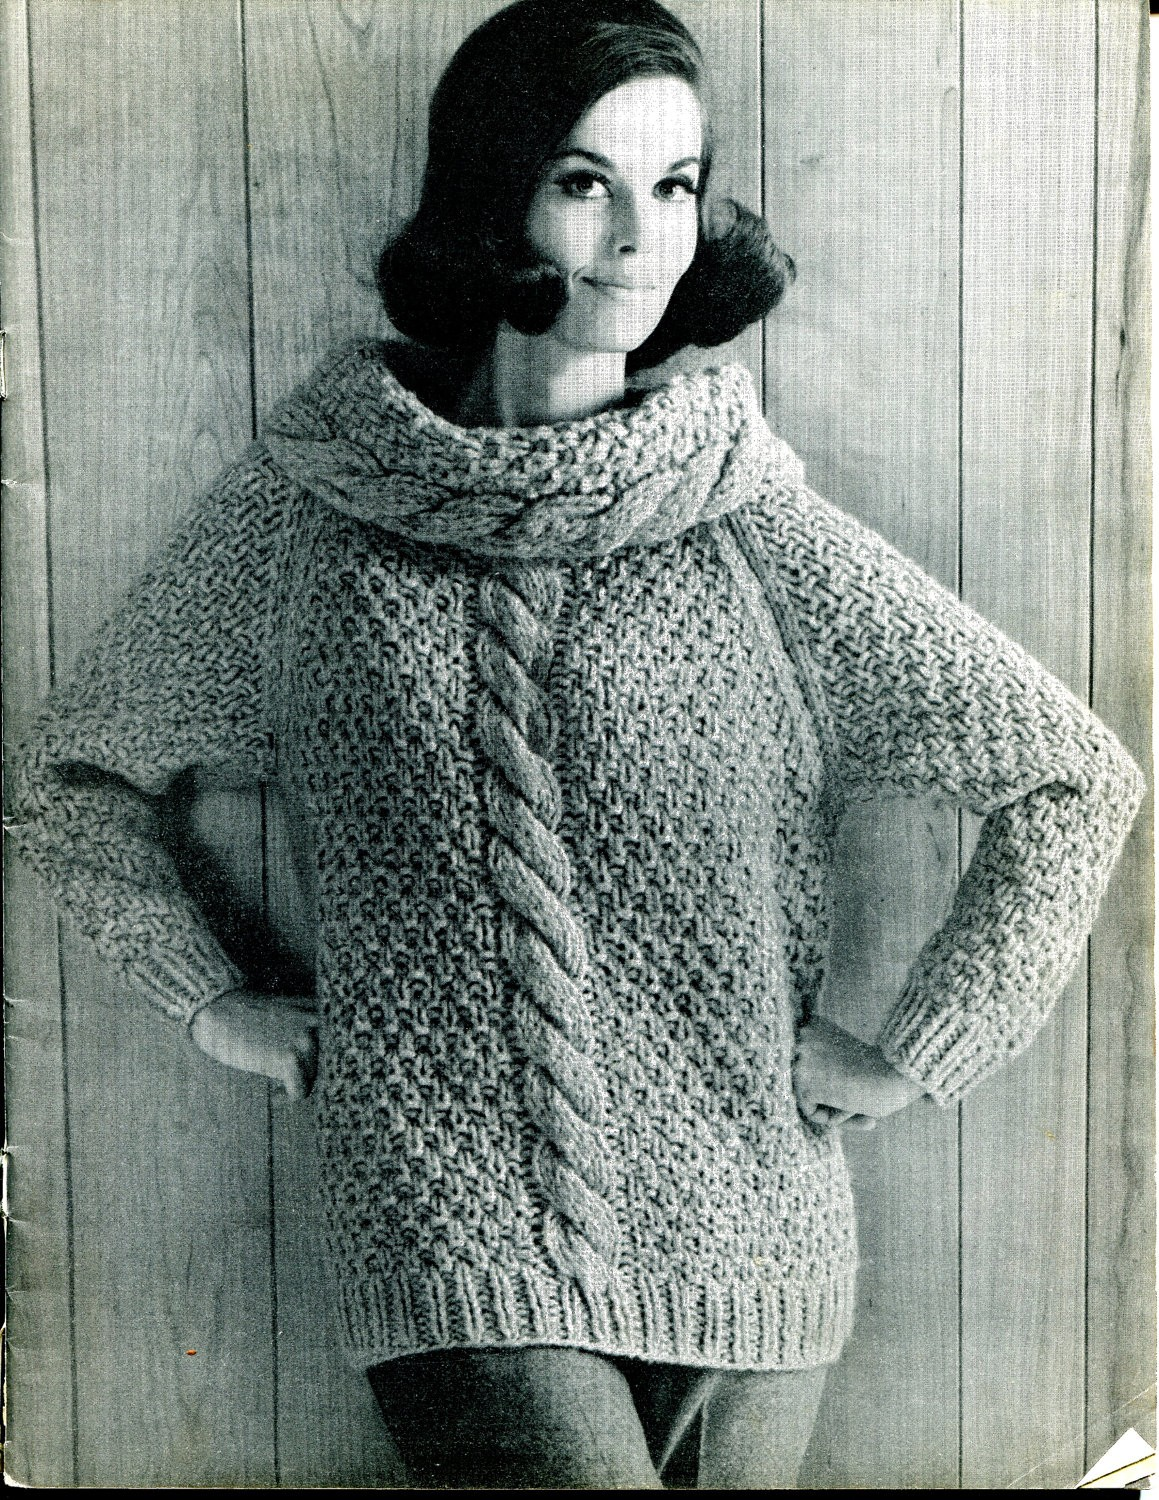 Knitting Patterns For Women : Cable Knit Sweater Patterns A Knitting Blog